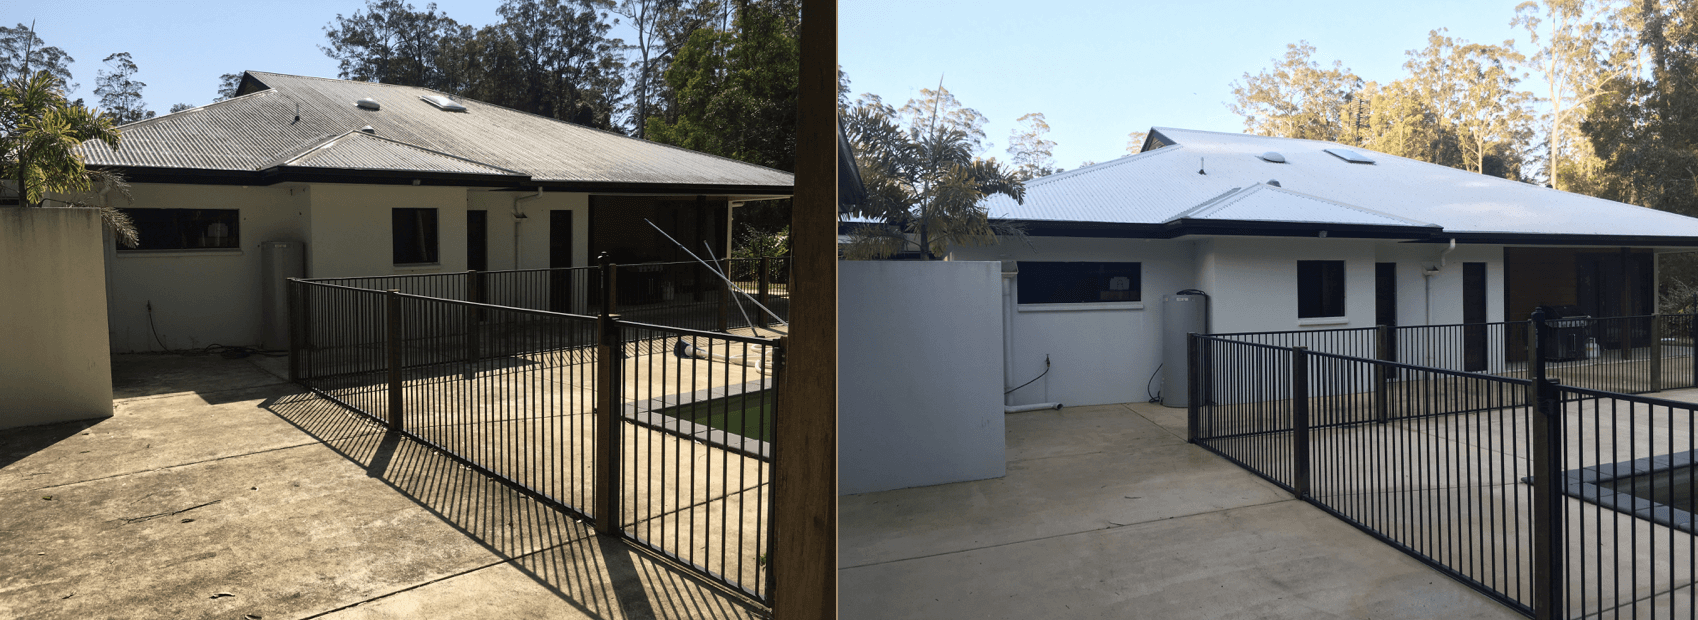 HIGH PRESSURE HOUSE WASHING CLEANING